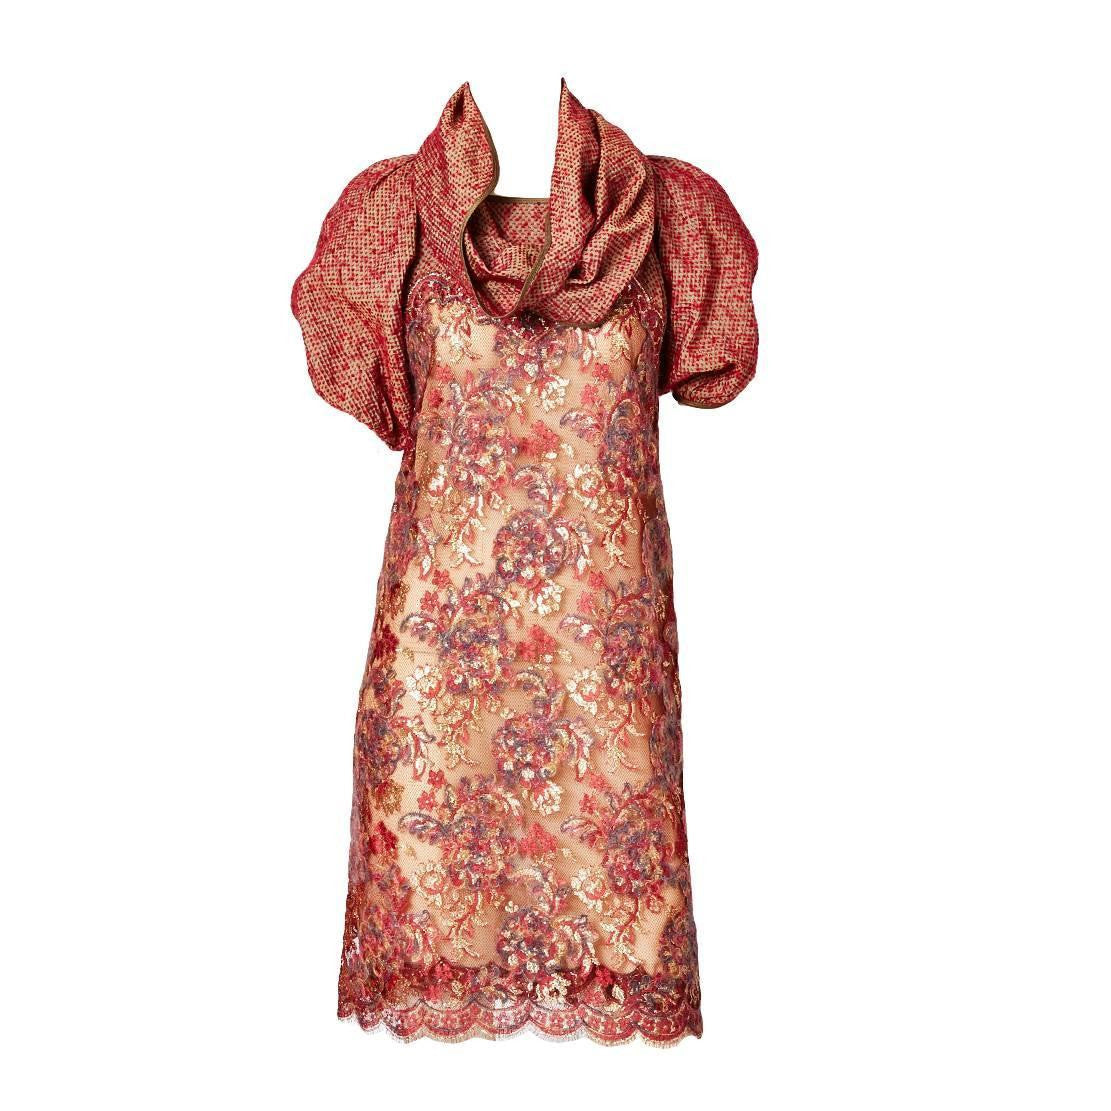 Geoffrey Beene Textured Silk and Lace Dress